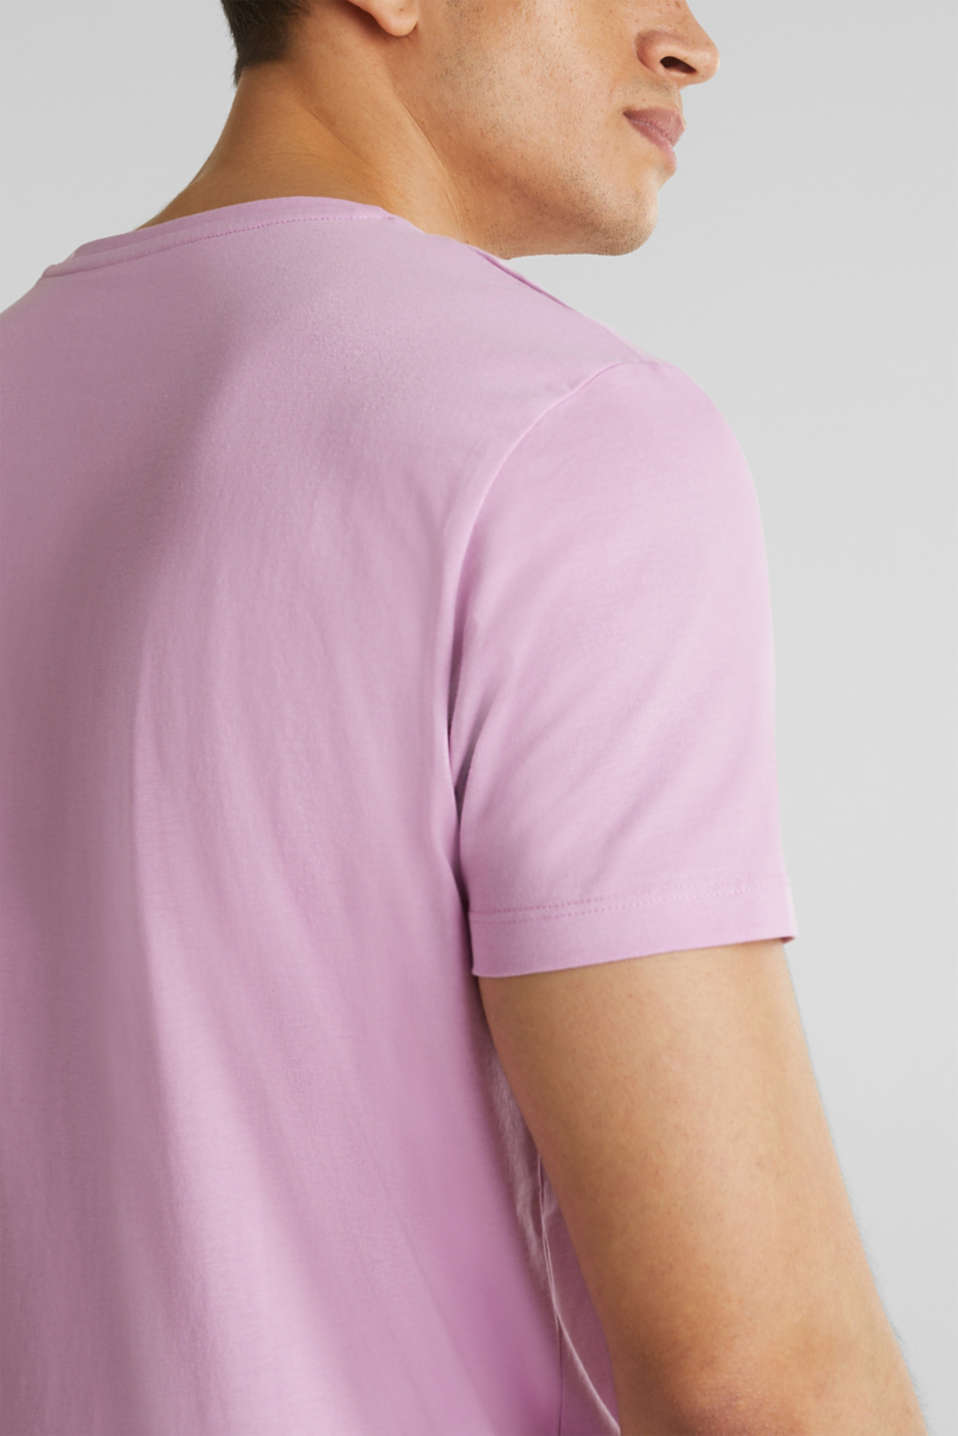 Jersey T-shirt in 100% cotton, LILAC, detail image number 1